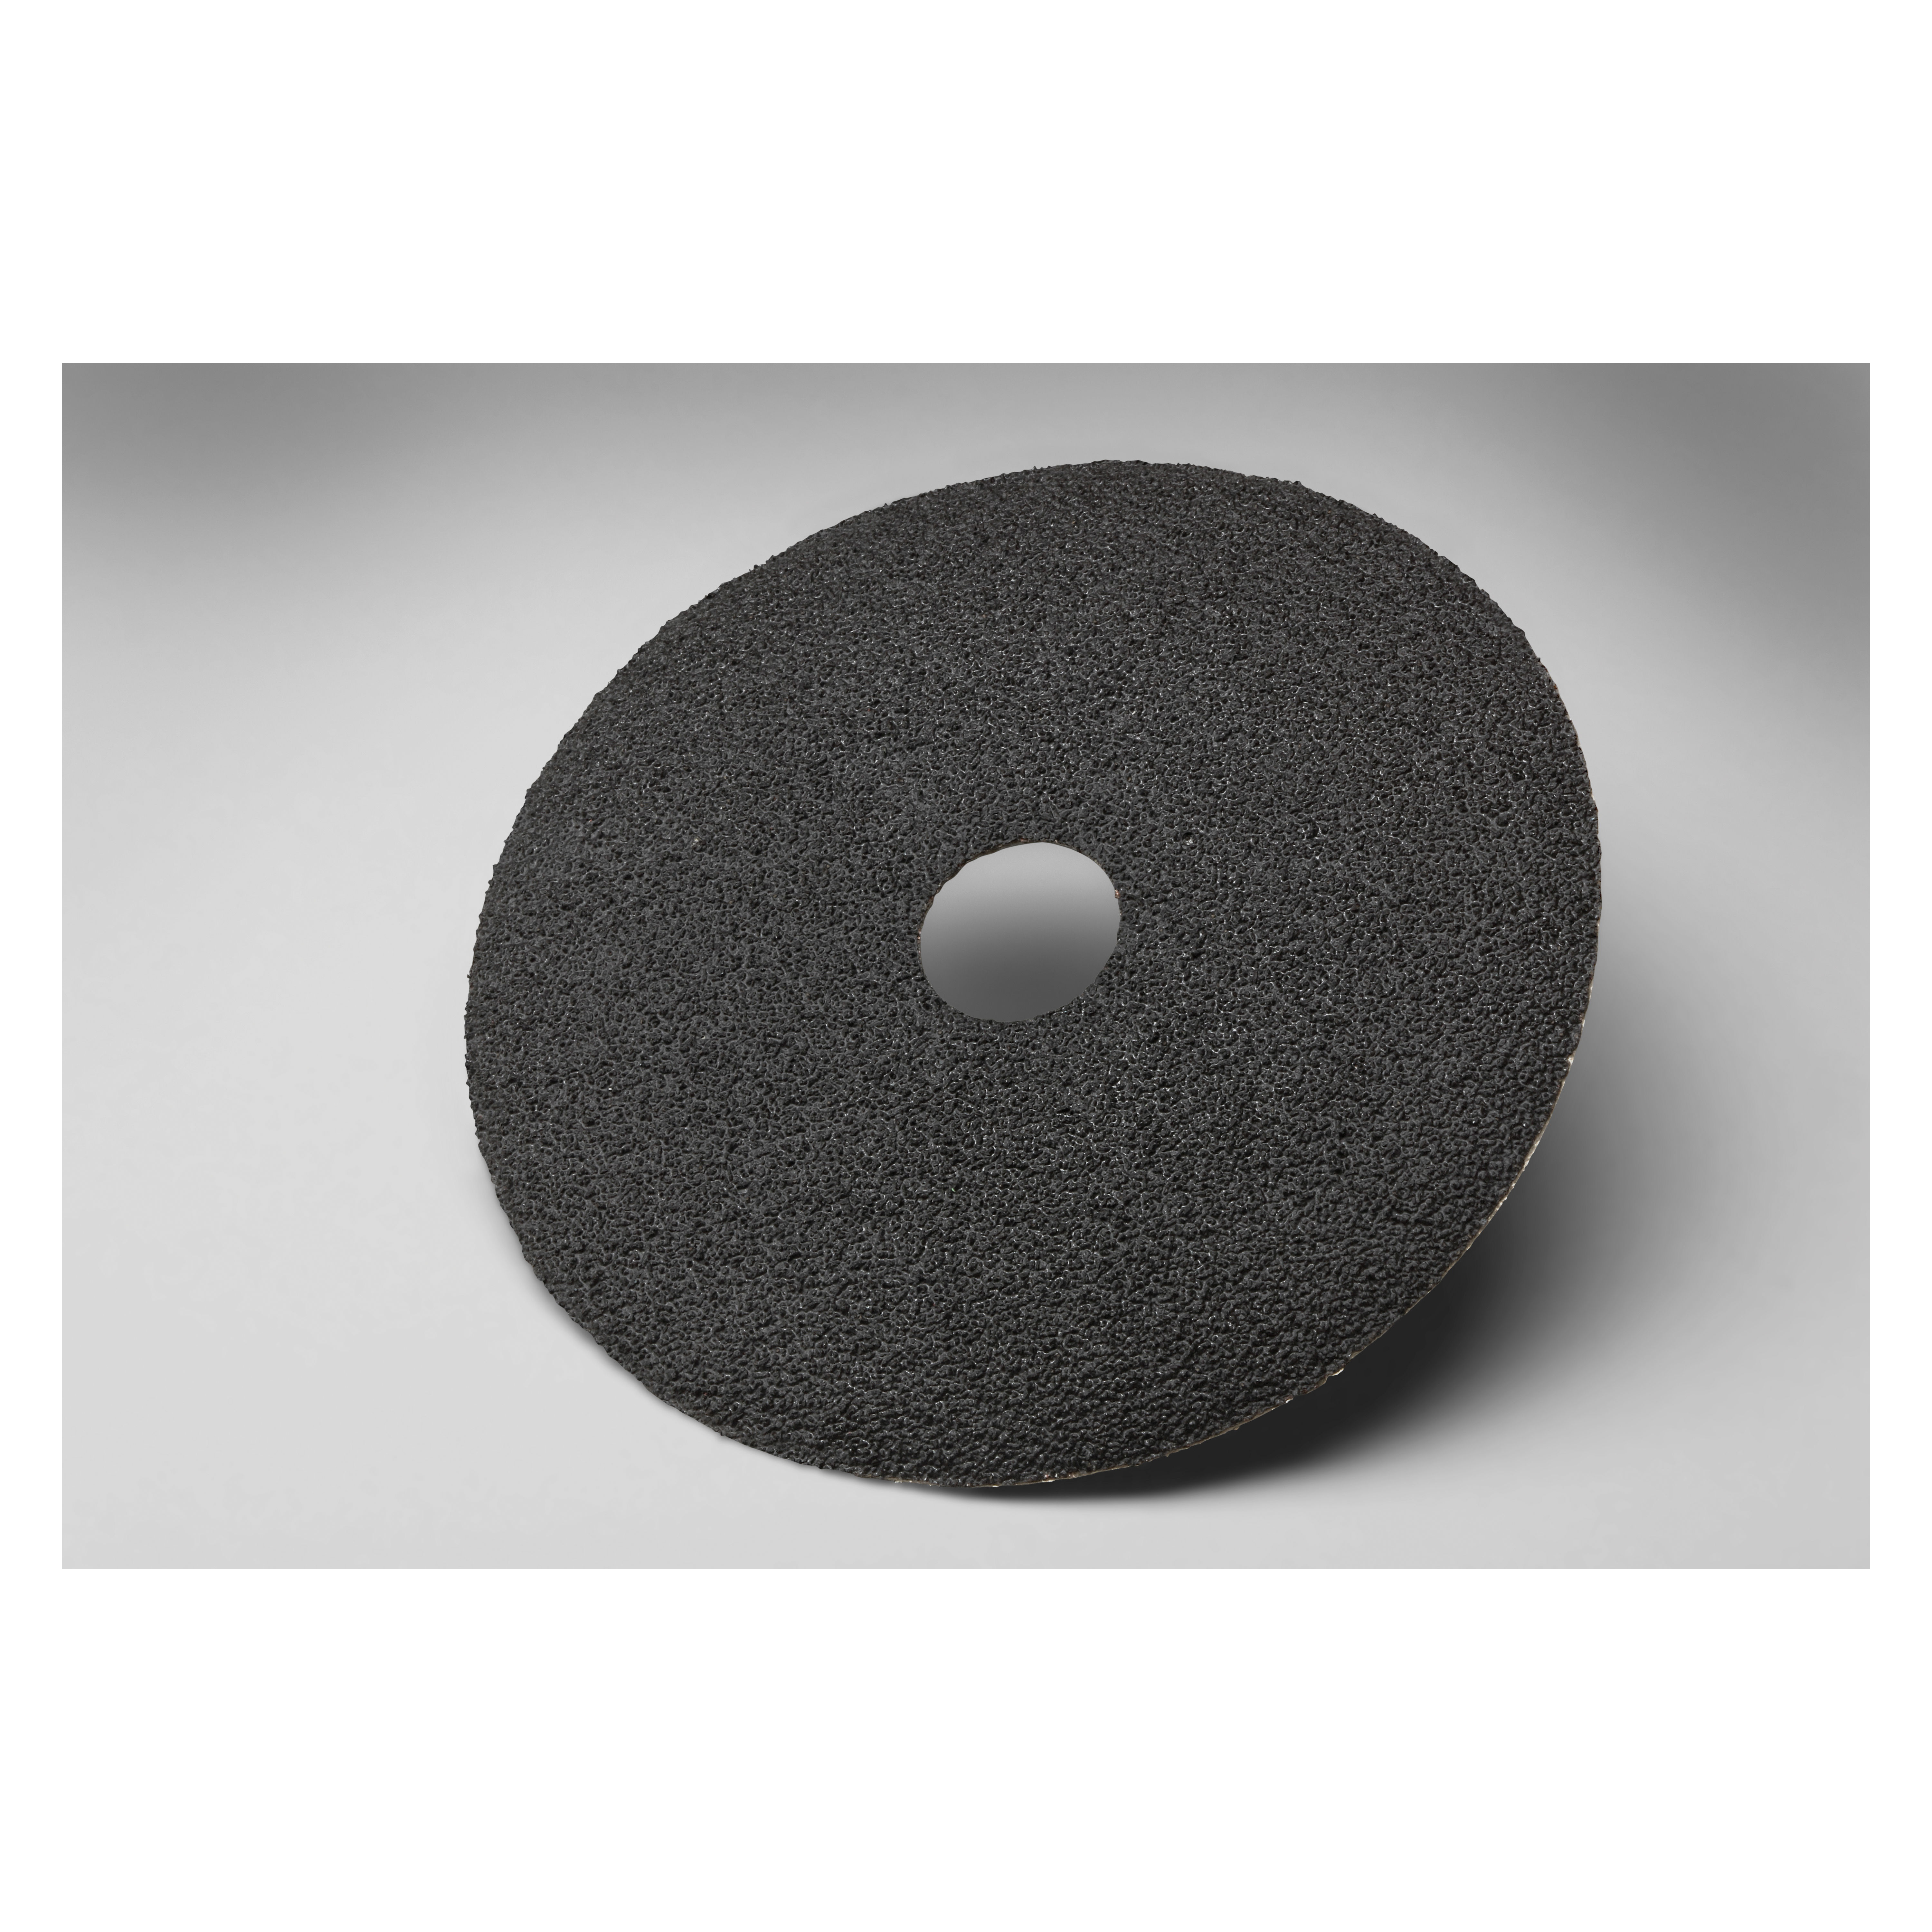 3M™ 051111-50412 501C Close Coated Closed Coated Abrasive Disc, 5 in Dia Disc, 7/8 in Center Hole, 36 Grit, Very Coarse Grade, Zirconia Alumina Abrasive, Arbor Attachment